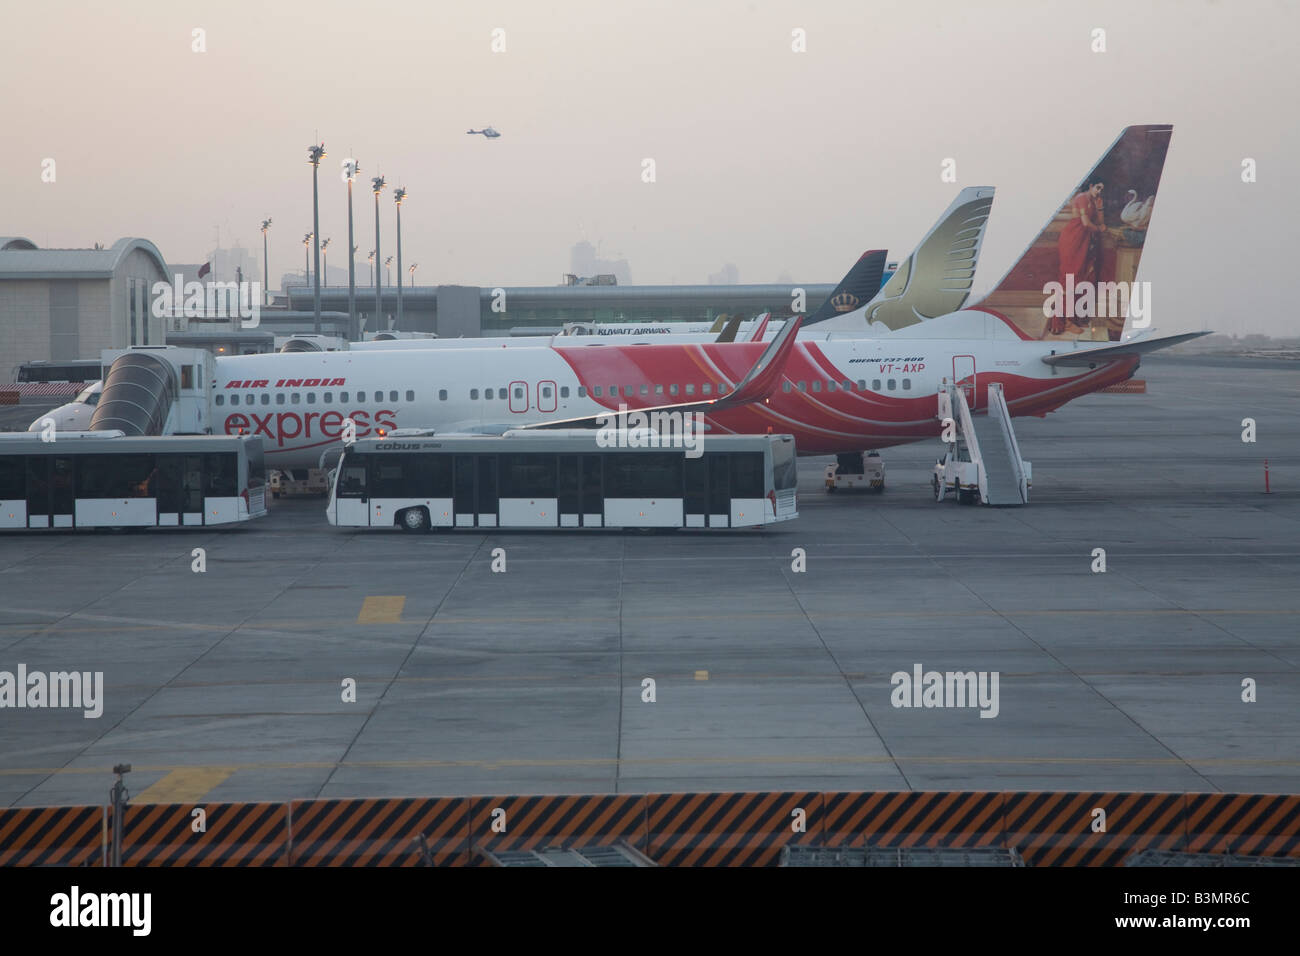 Gulf Air Planes at Doha Airport Qatar Middle East Stock Photo